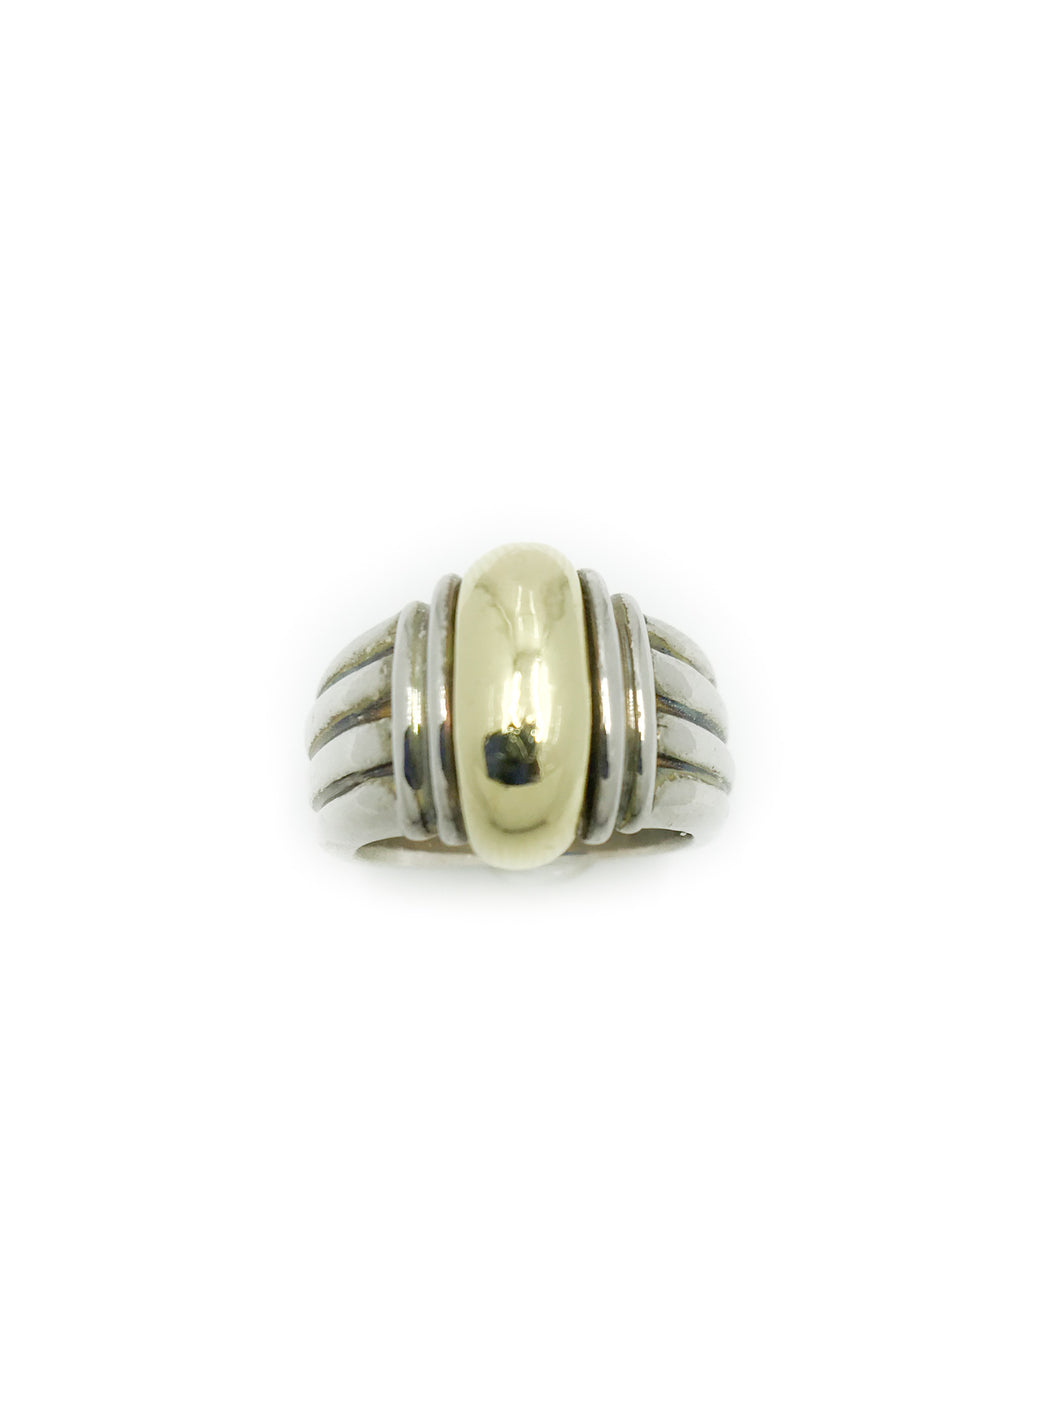 14K Yellow Gold .925 & Sterling Silver Size 5.5